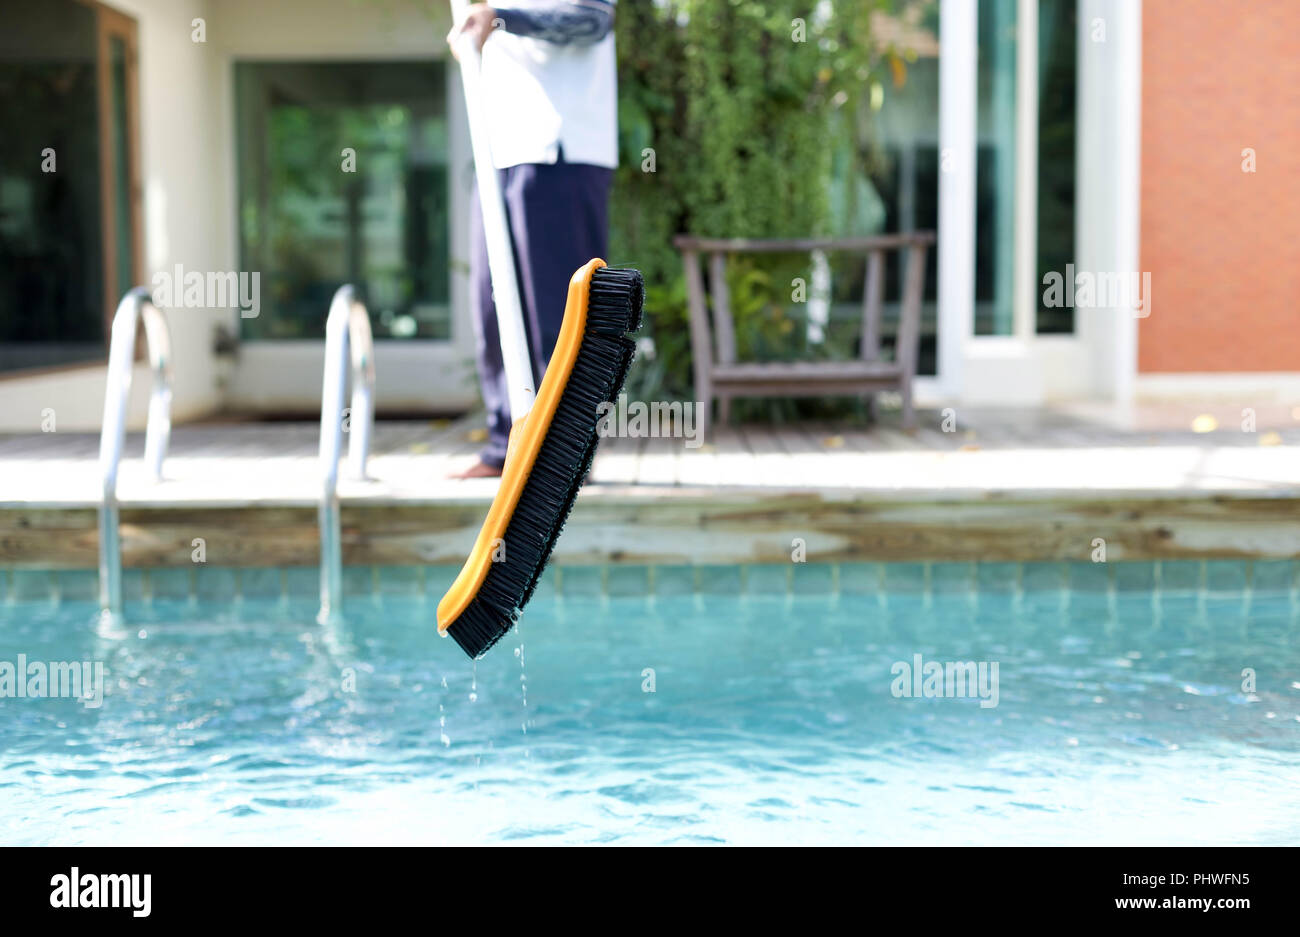 Mna is cleaning a swimming pool with a brush - Stock Image